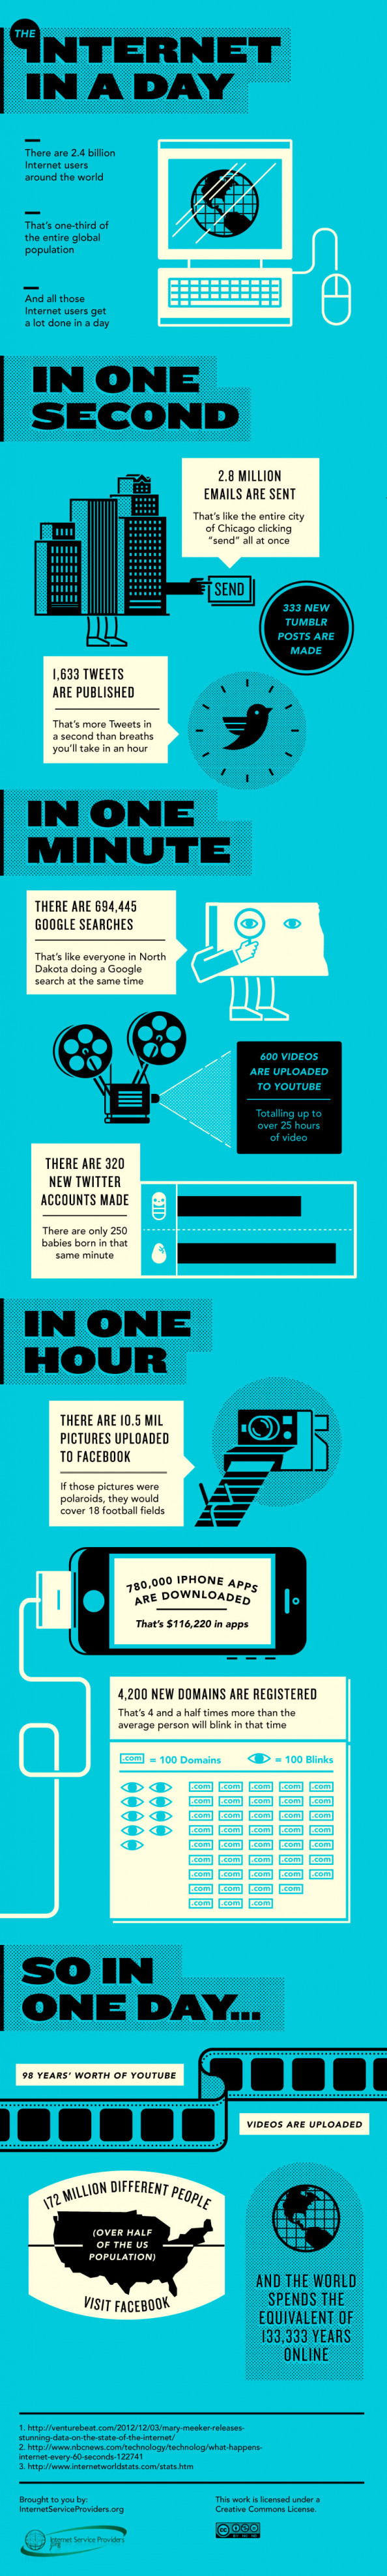 The Internet in a Day Infographic